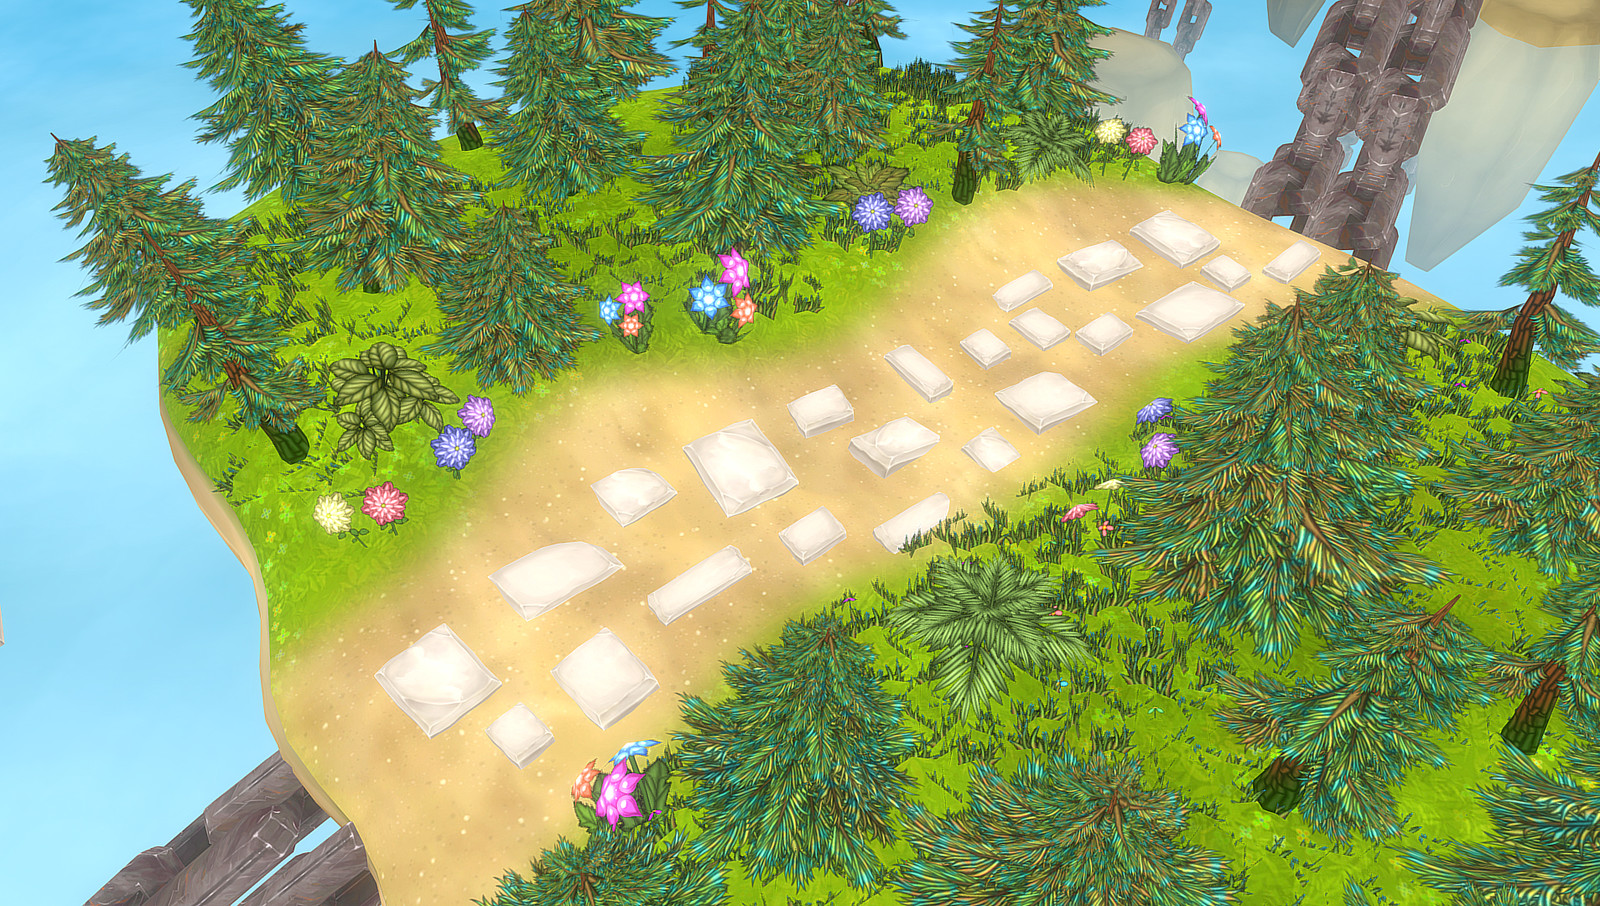 Working on the foliage and on some sunken path stones.